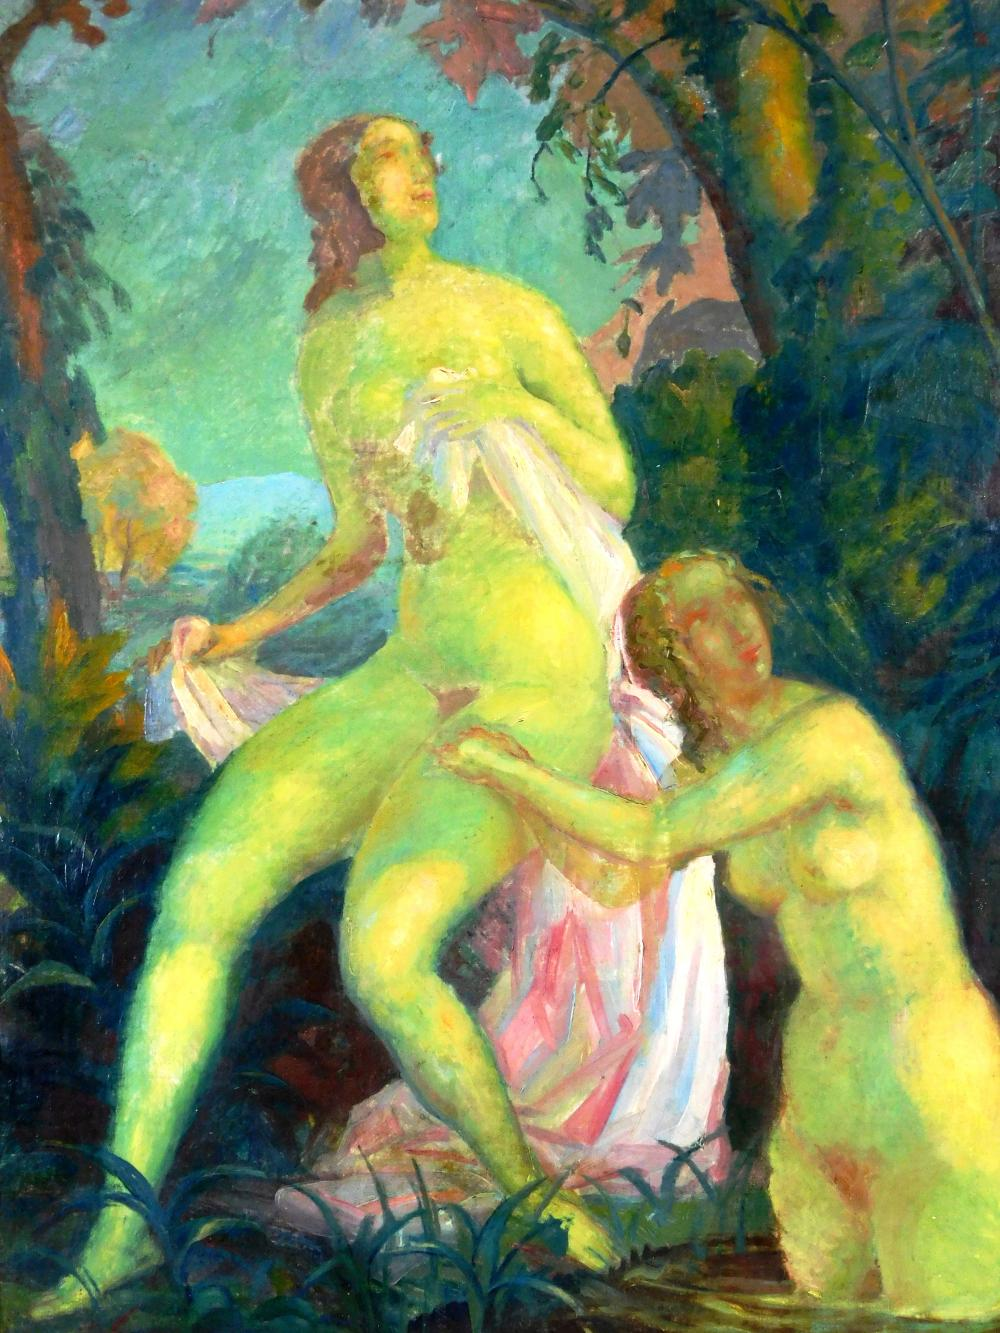 Richard Klein (German, 1890-1967), oil on canvas, two nude women with greenish tint to their skin tone, one seated wrapped in light...